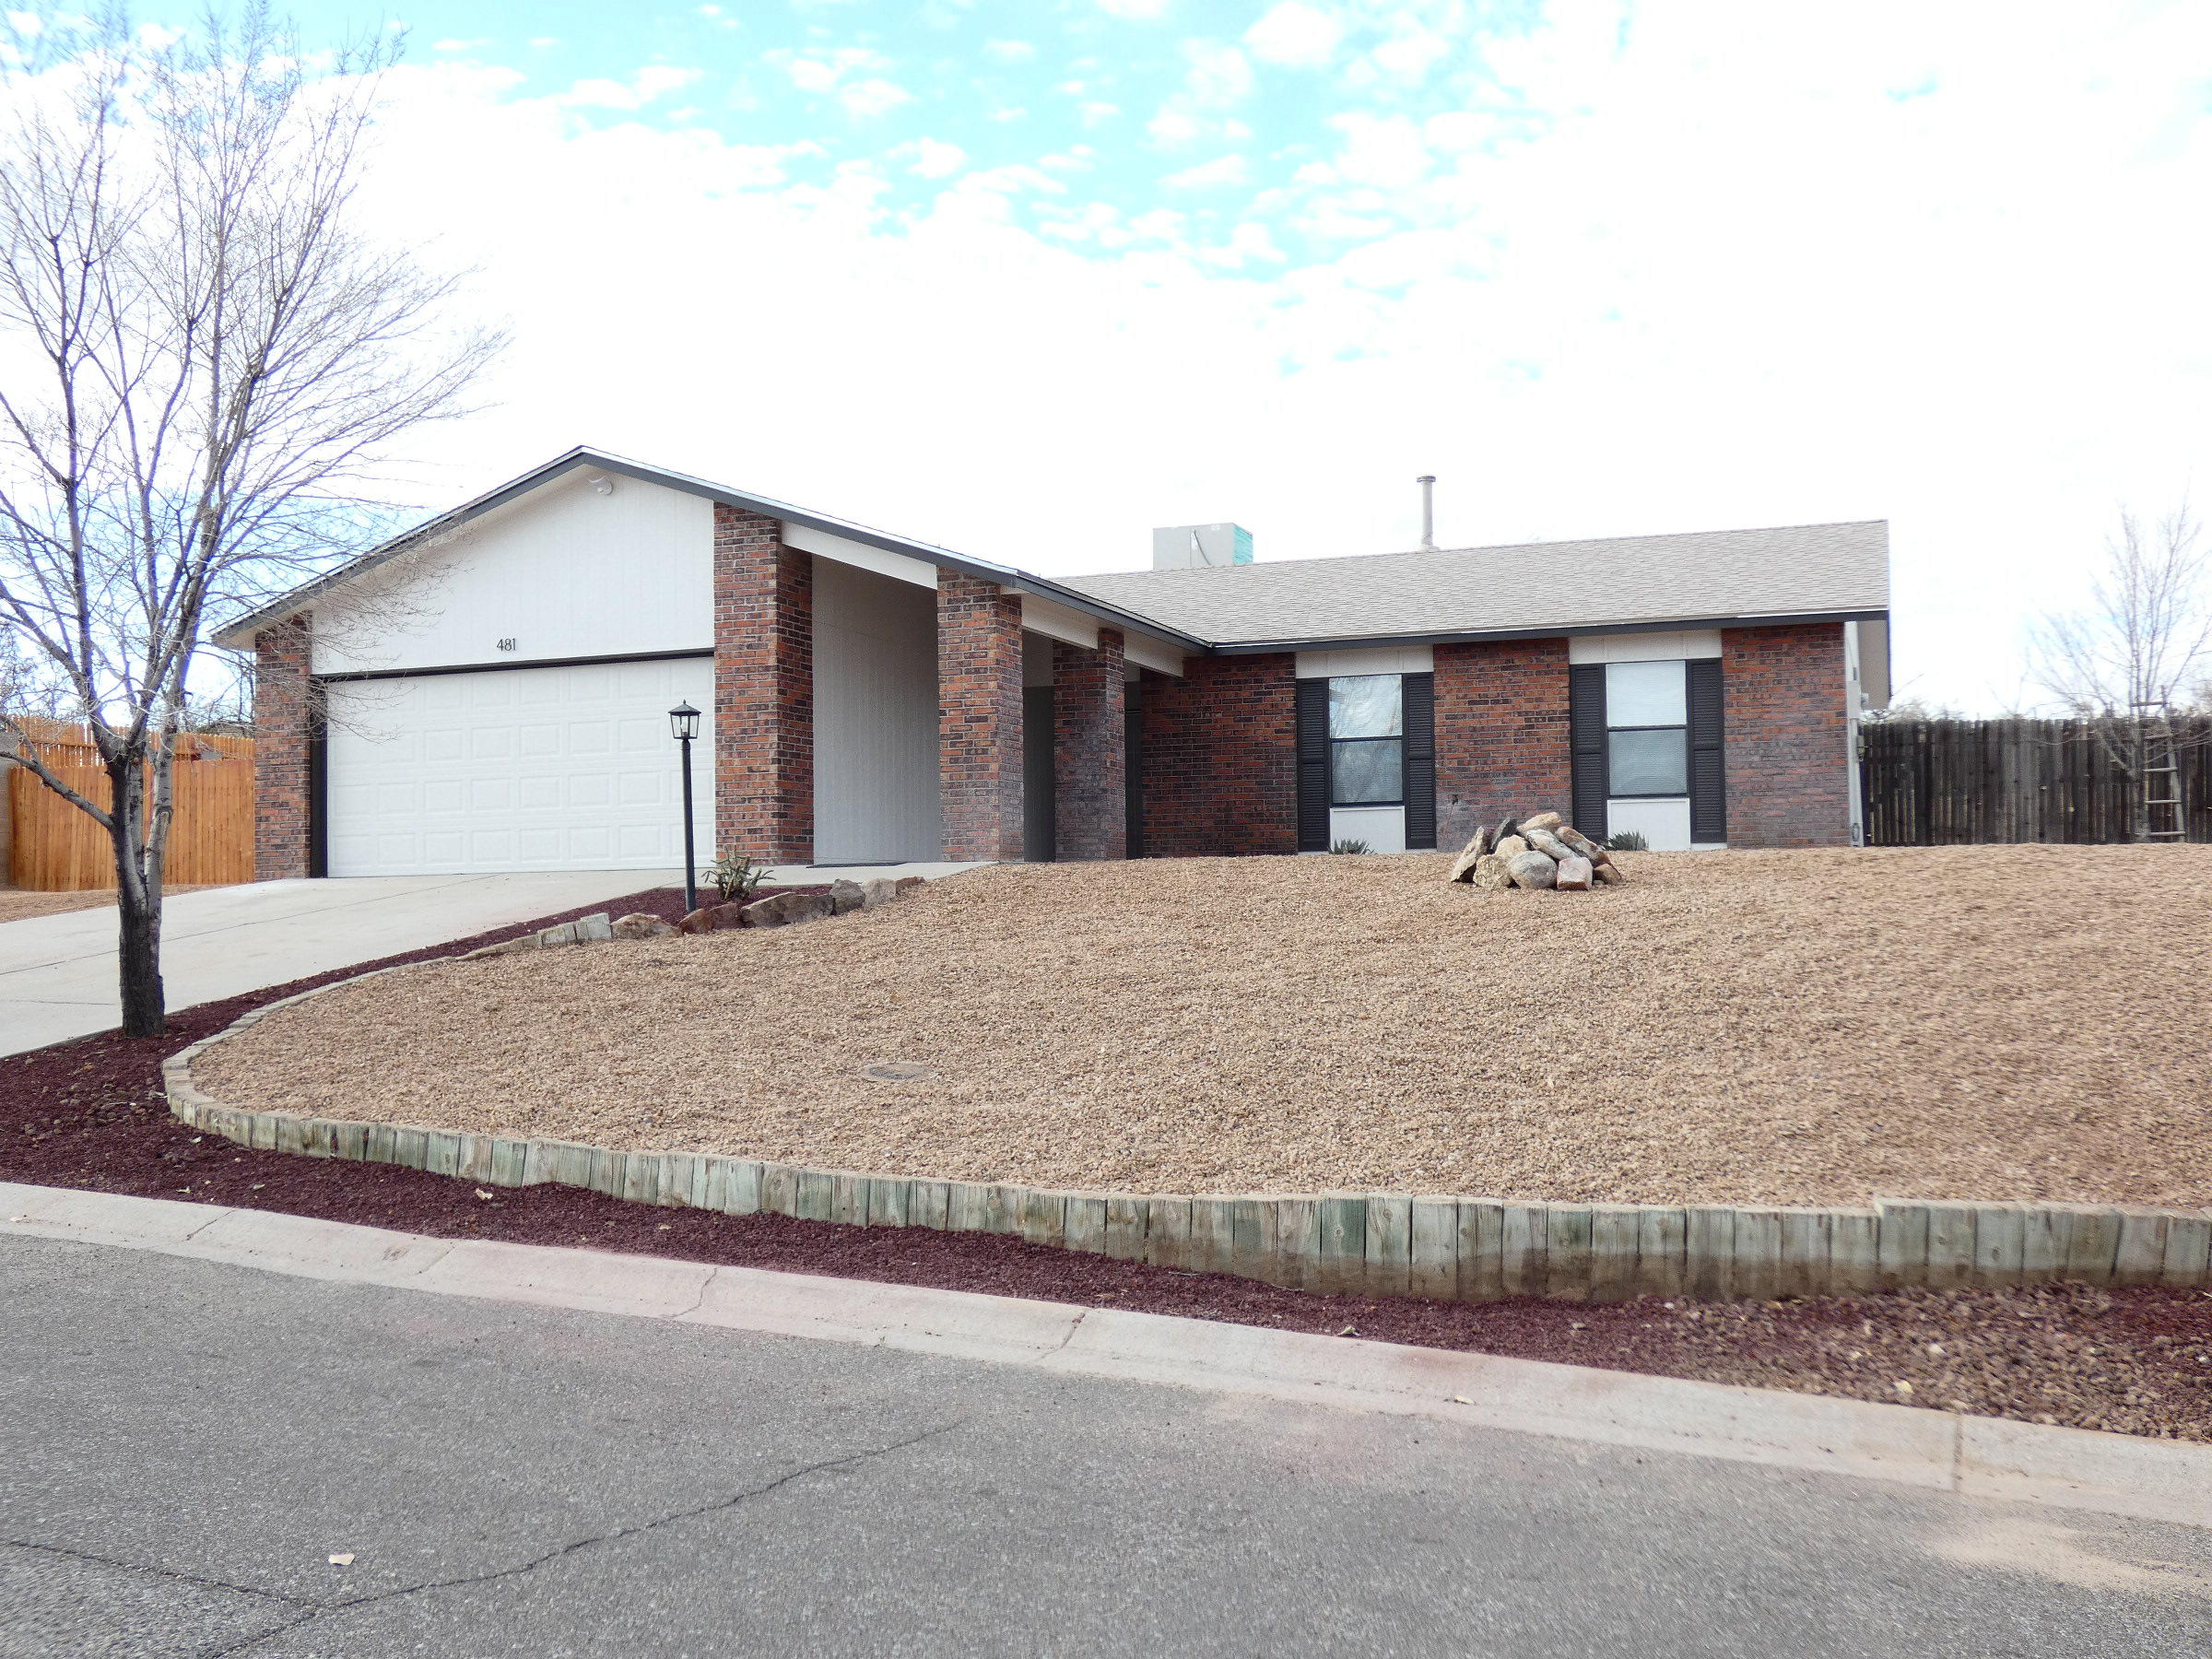 Amazing Transformation!  4 bedrooms, 2 bathrooms on .37 acres.  New roof, new skylights, new furnace, new water heater, all new countertops with undermount sinks, new range, new dishwasher, new tile backsplash in kitchen, custom tile surrounds in hall bath, custom shower in master bath, new lighting, all new flooring, updated fireplace with mantle, new plumbing fixtures, new blinds, three walk-in closets, corner lot, new front landscaping, new paint inside and out, frig, washer and dryer. Have an RV or lots of toys?  No problem here.  And just a short walk to beautiful Vista Hills Park.